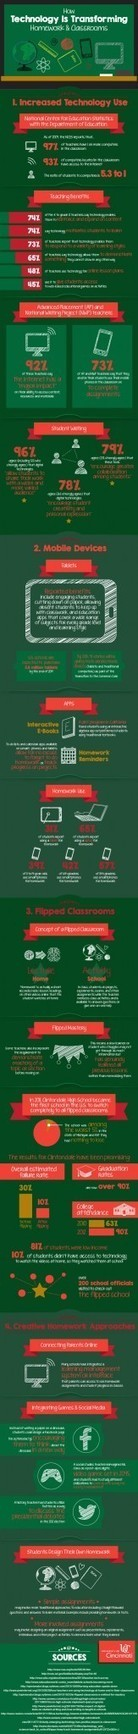 How Technology Transforms Classrooms Infographic | Escolar | Scoop.it